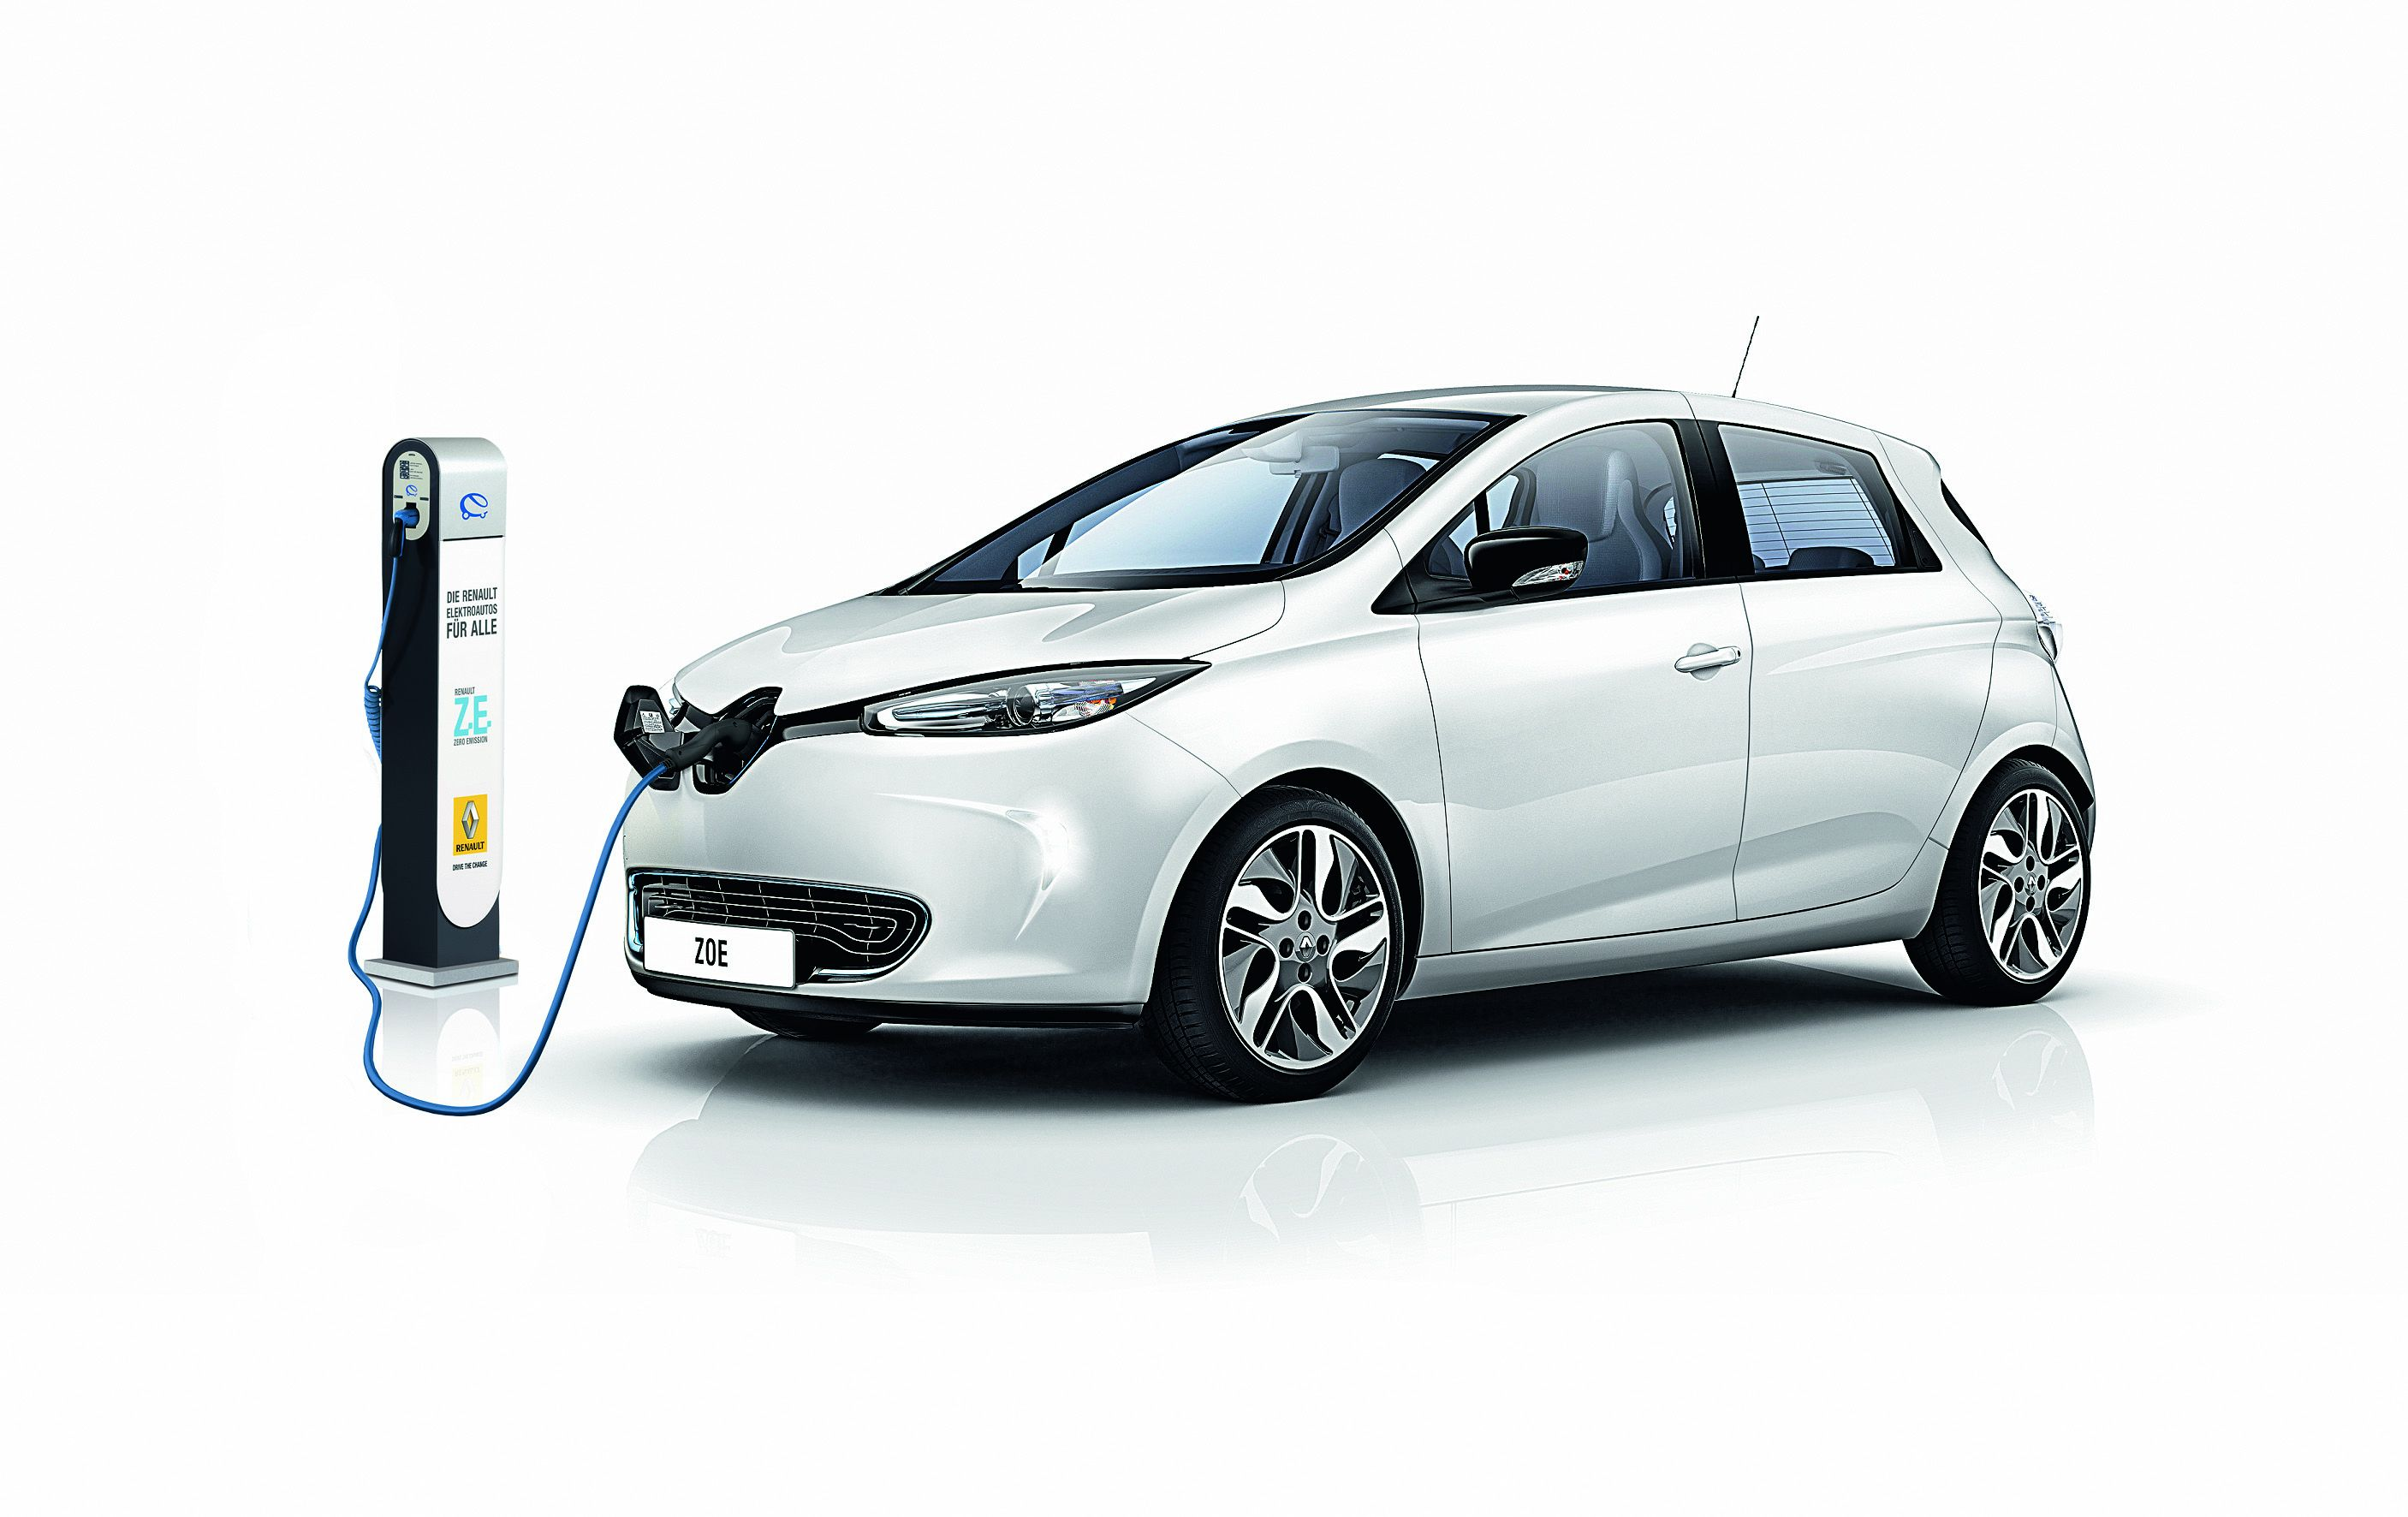 renault zoe r110 version limited 41 kwh ludego. Black Bedroom Furniture Sets. Home Design Ideas